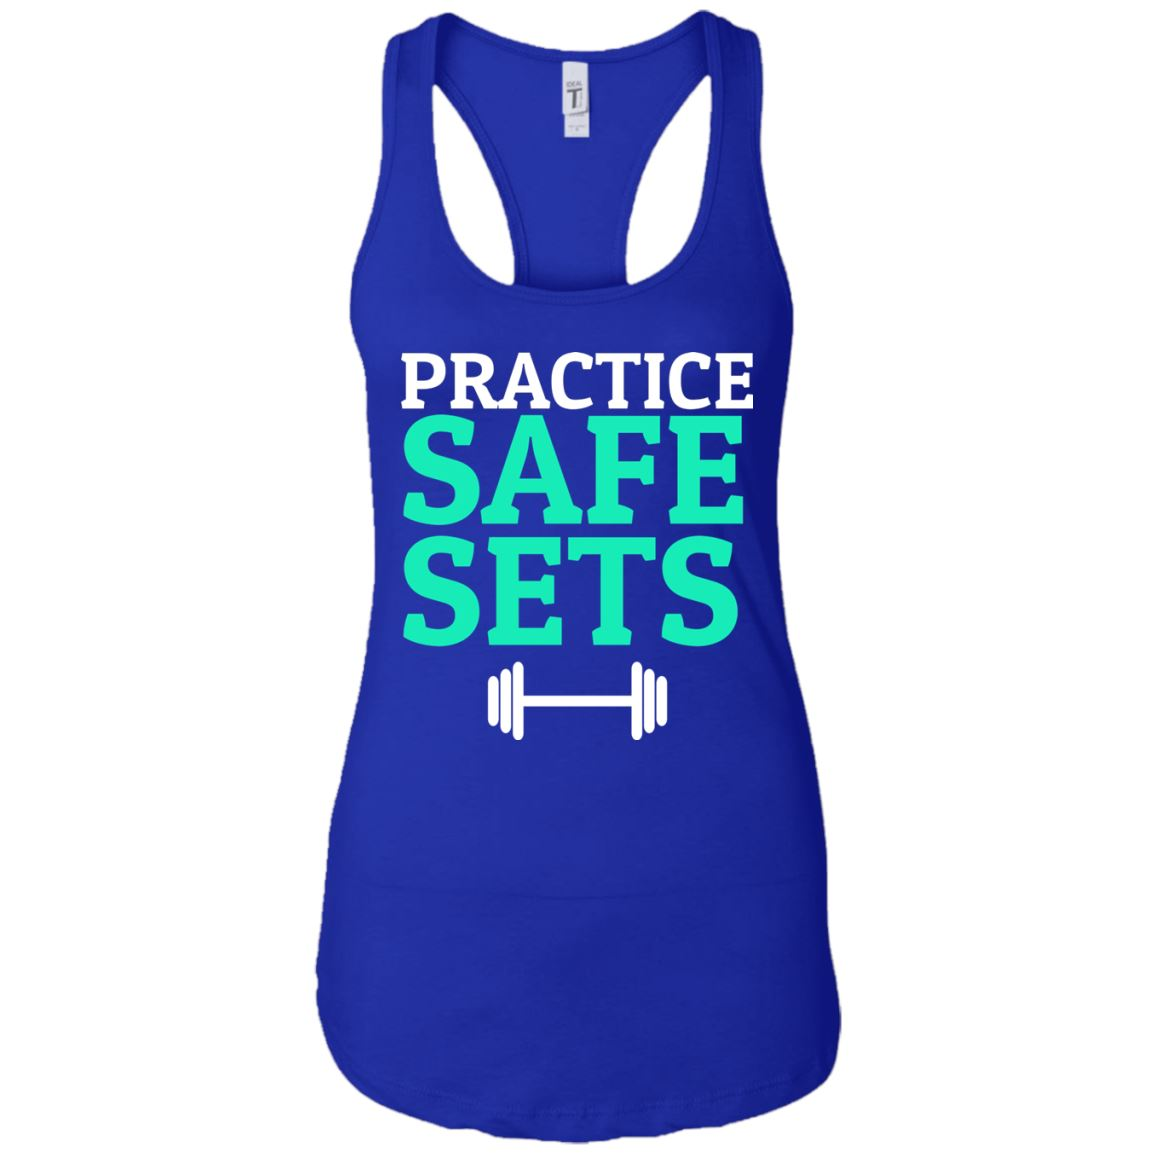 Practice Safe Sets Womens Racerback Tank T-Shirts Royal X-Small